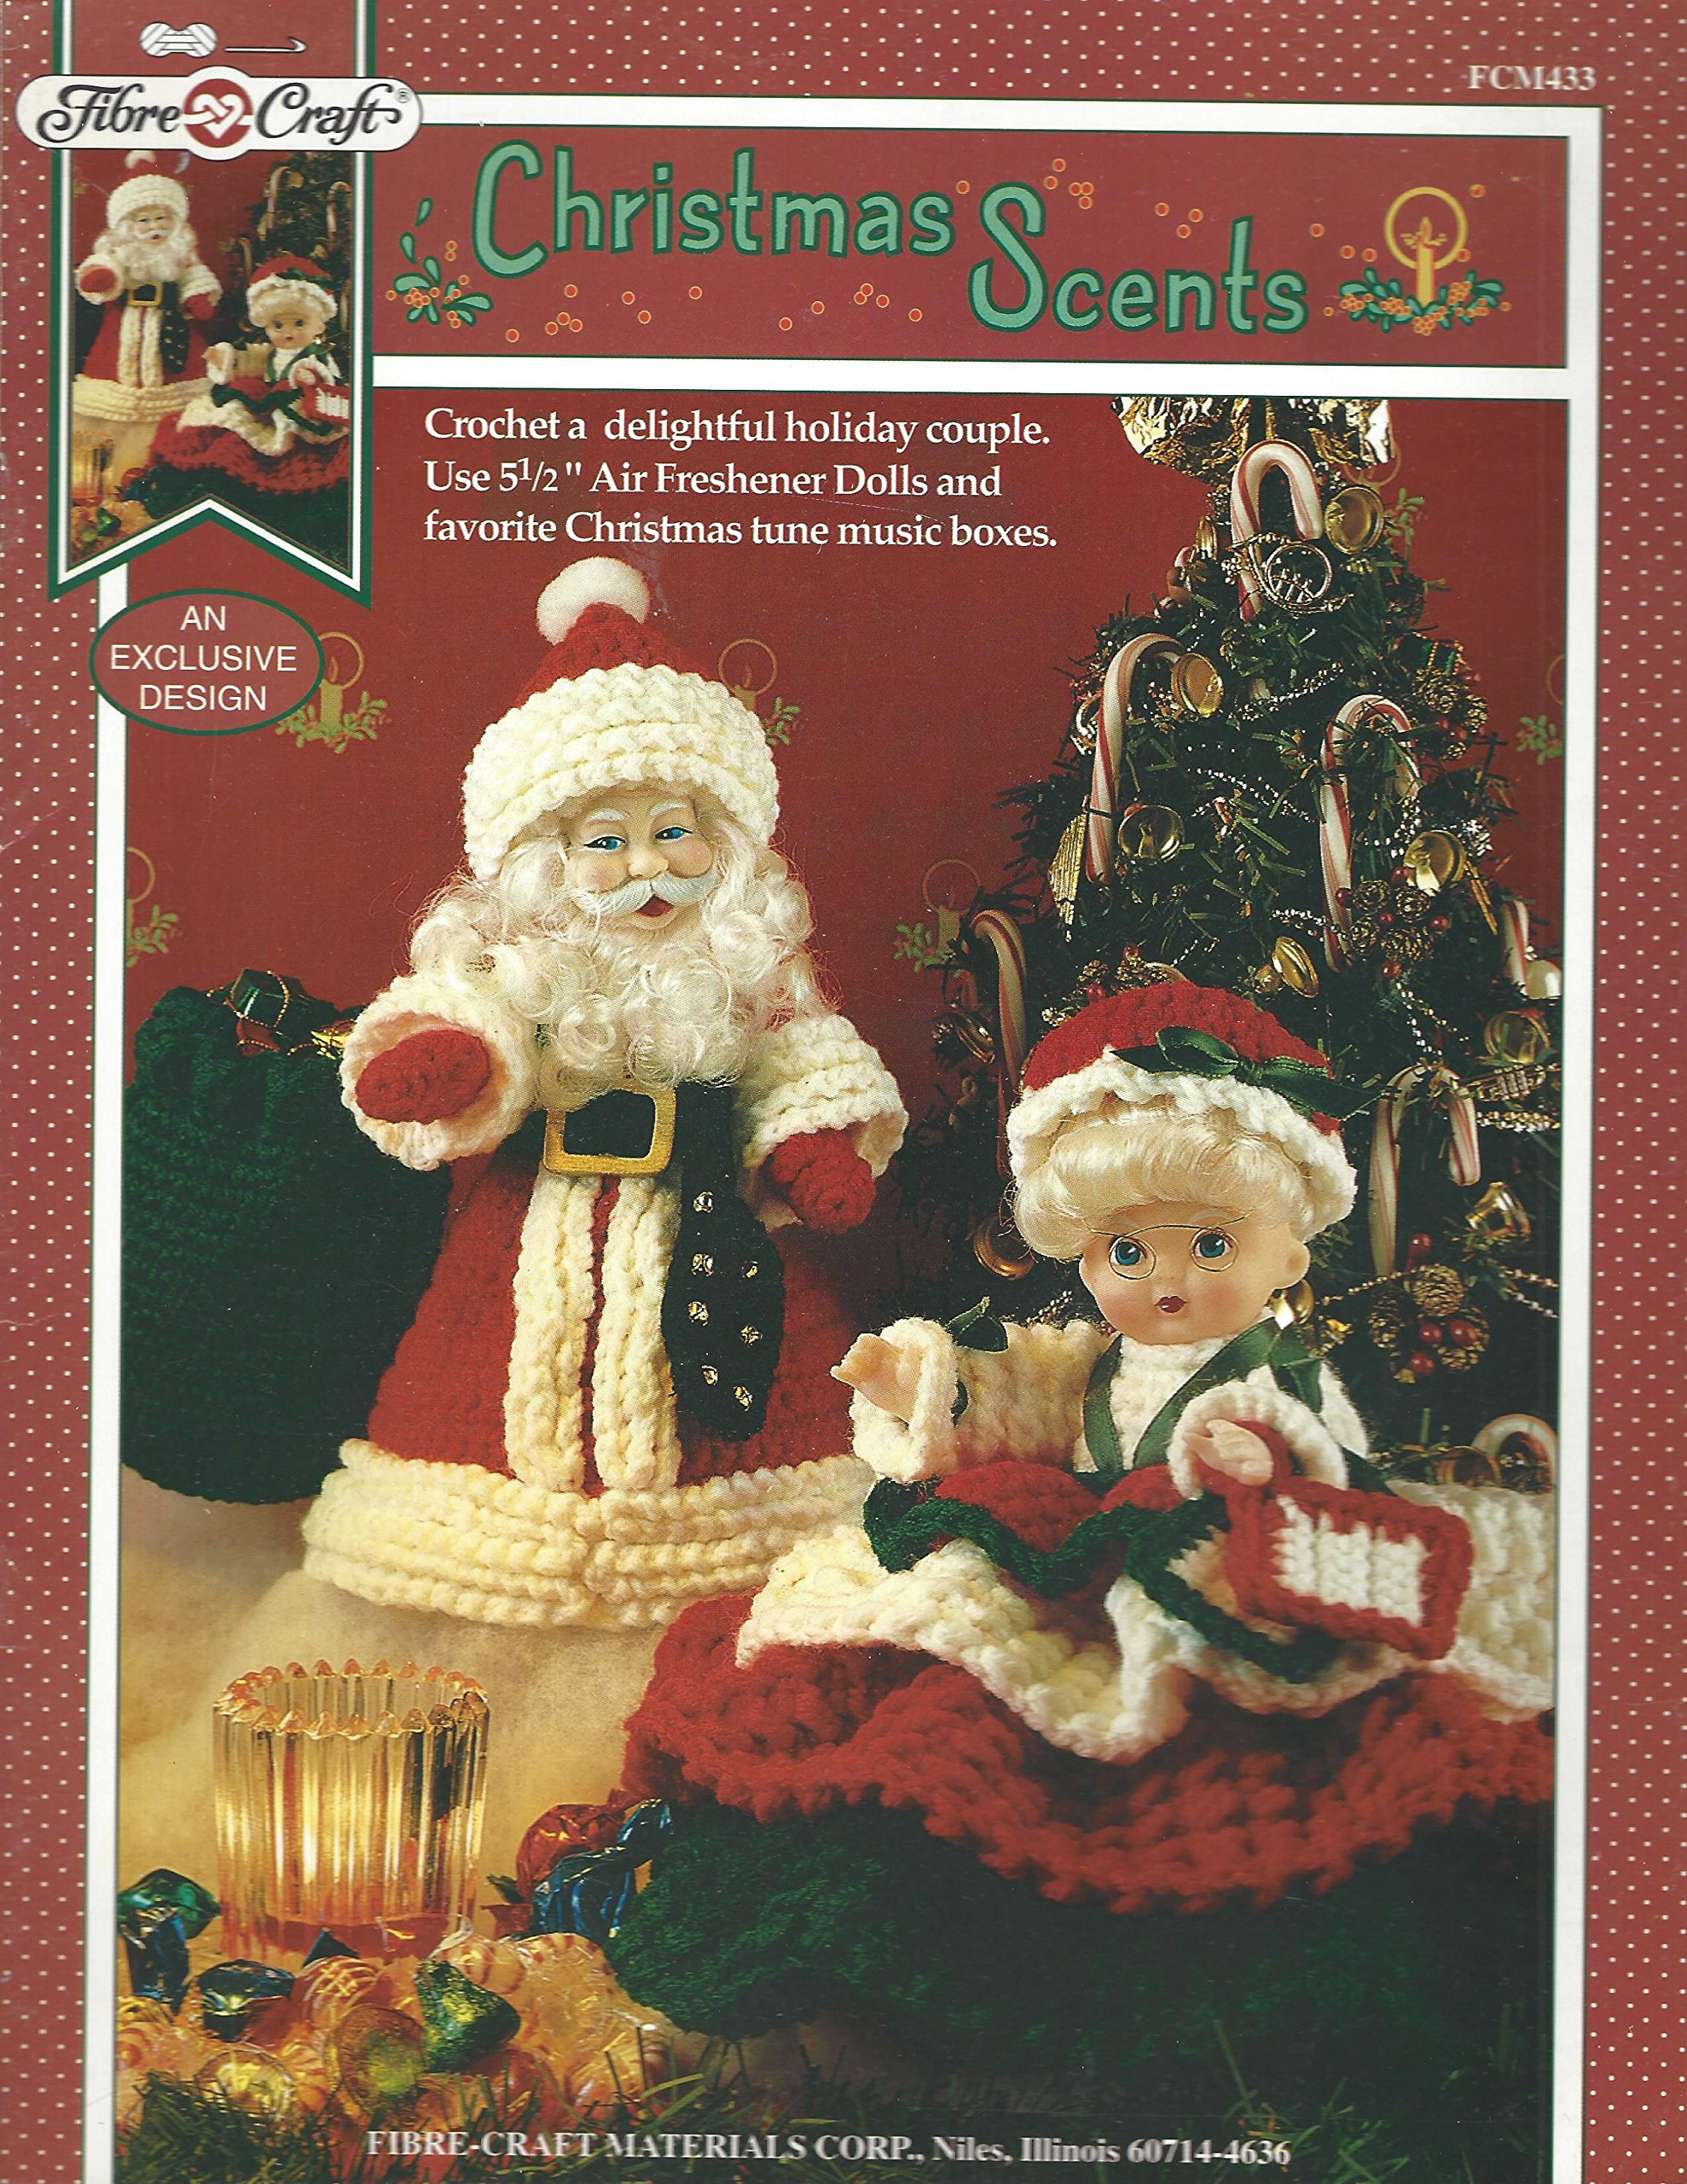 Christmas Scents - Crochet Patterns for Mr. and Mrs. Santa - # FCM433 Pamphlet – 1995 Susan Jennings Fibre Craft B000YBFBC2